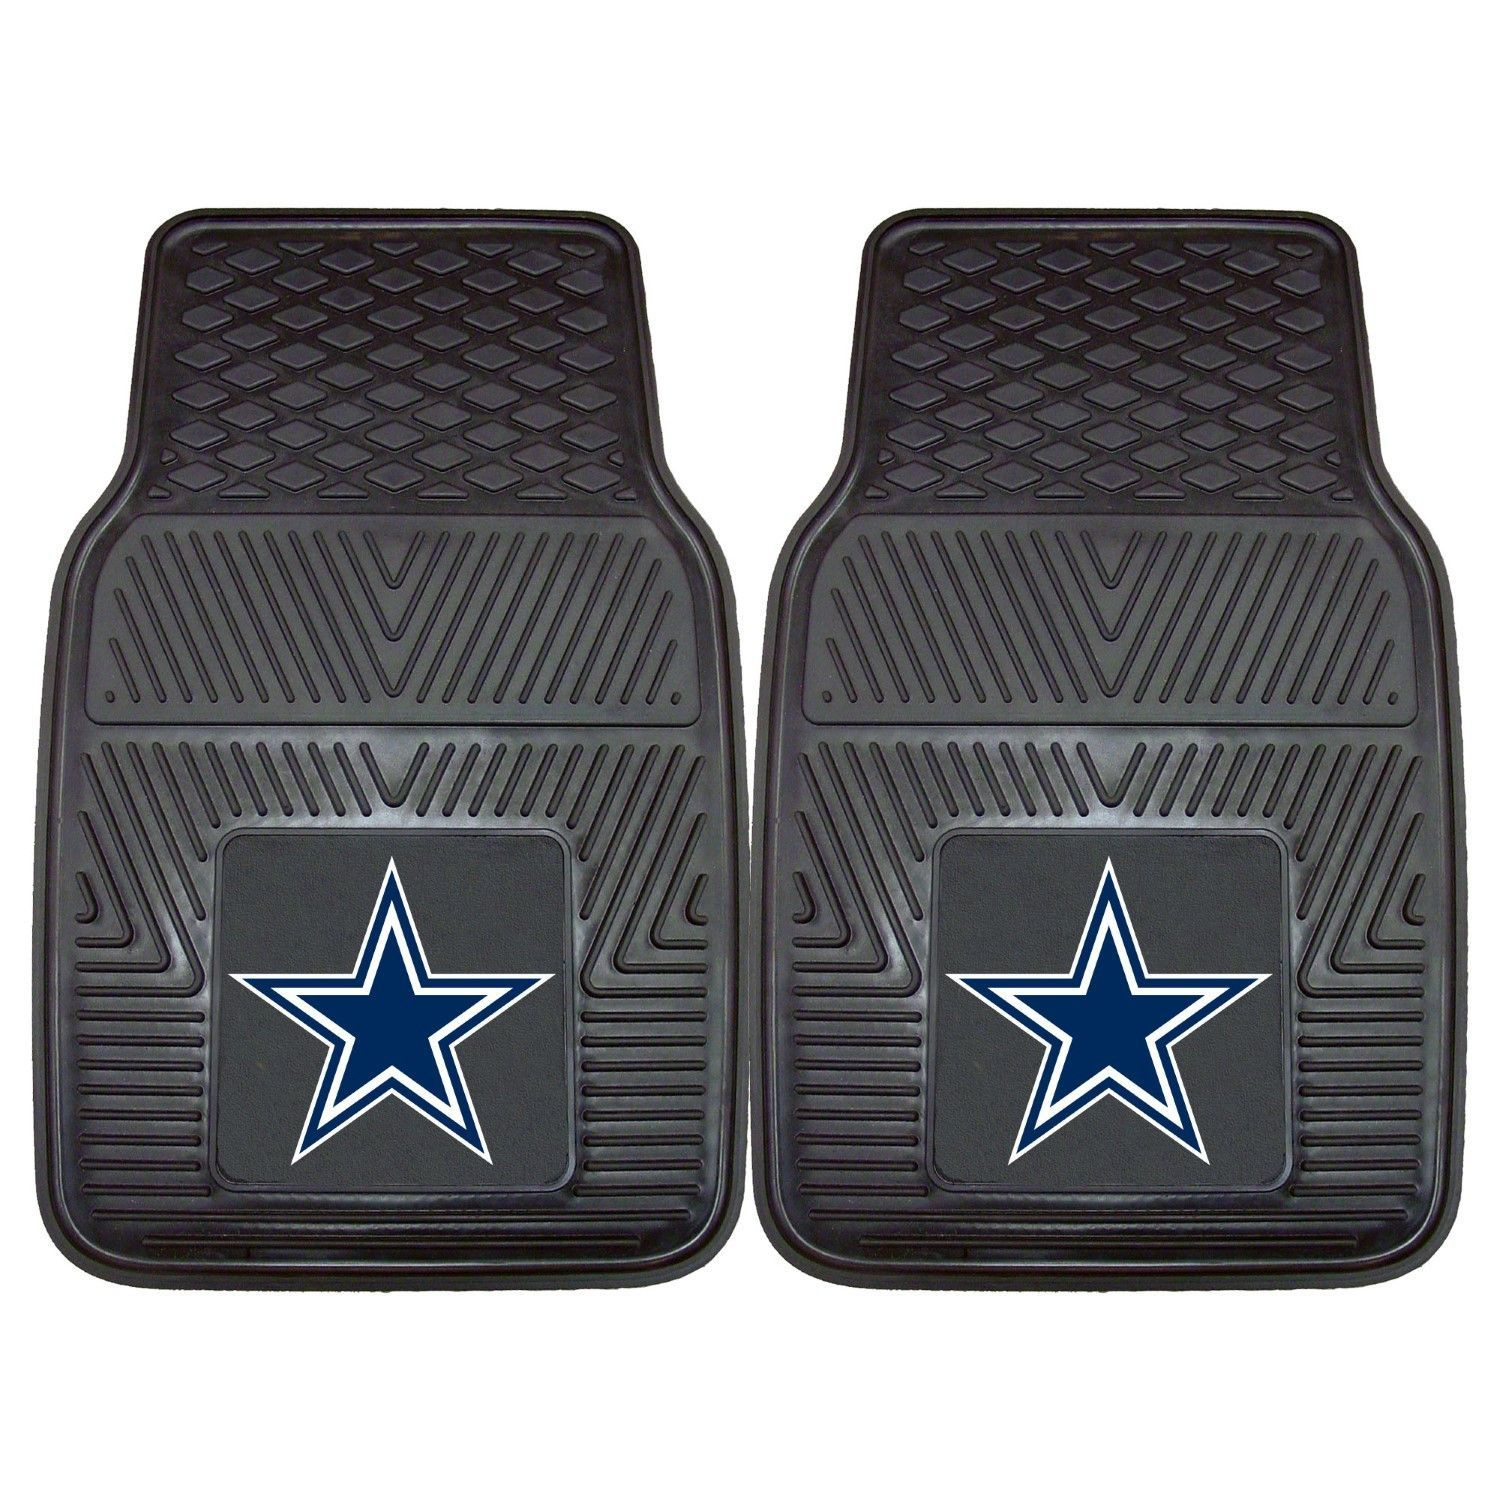 Fanmats 2 Piece Vinyl Car Mat Set NFL - Dallas Cowboys